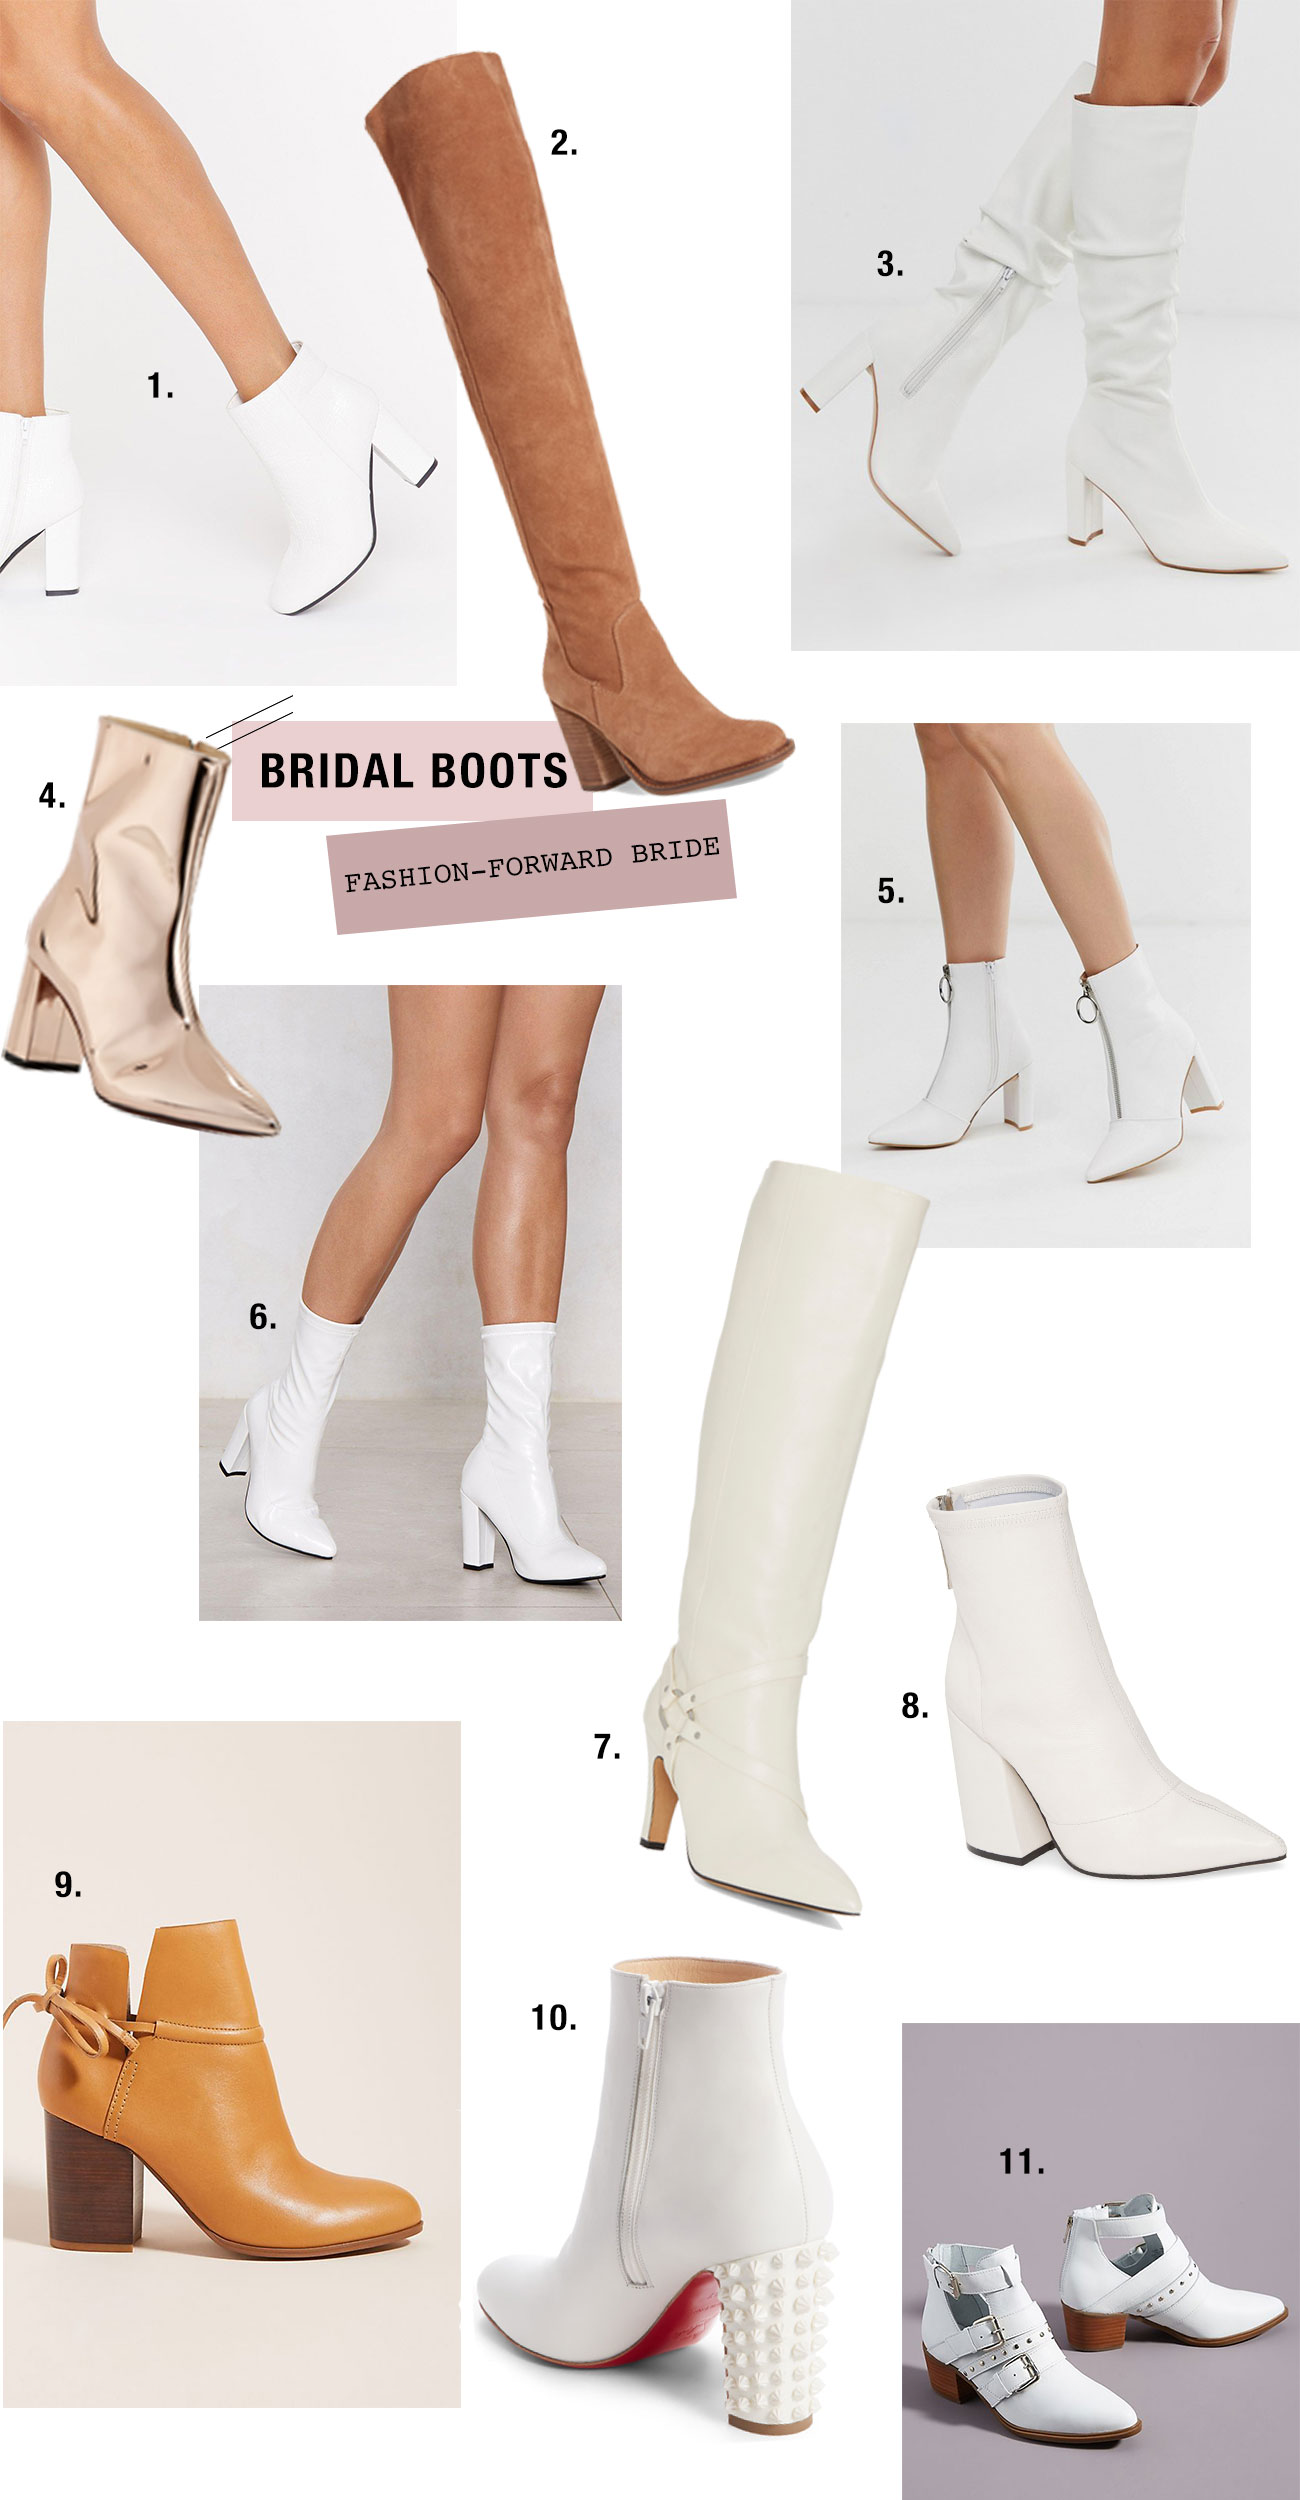 bridal boots for the fashion-forward bride